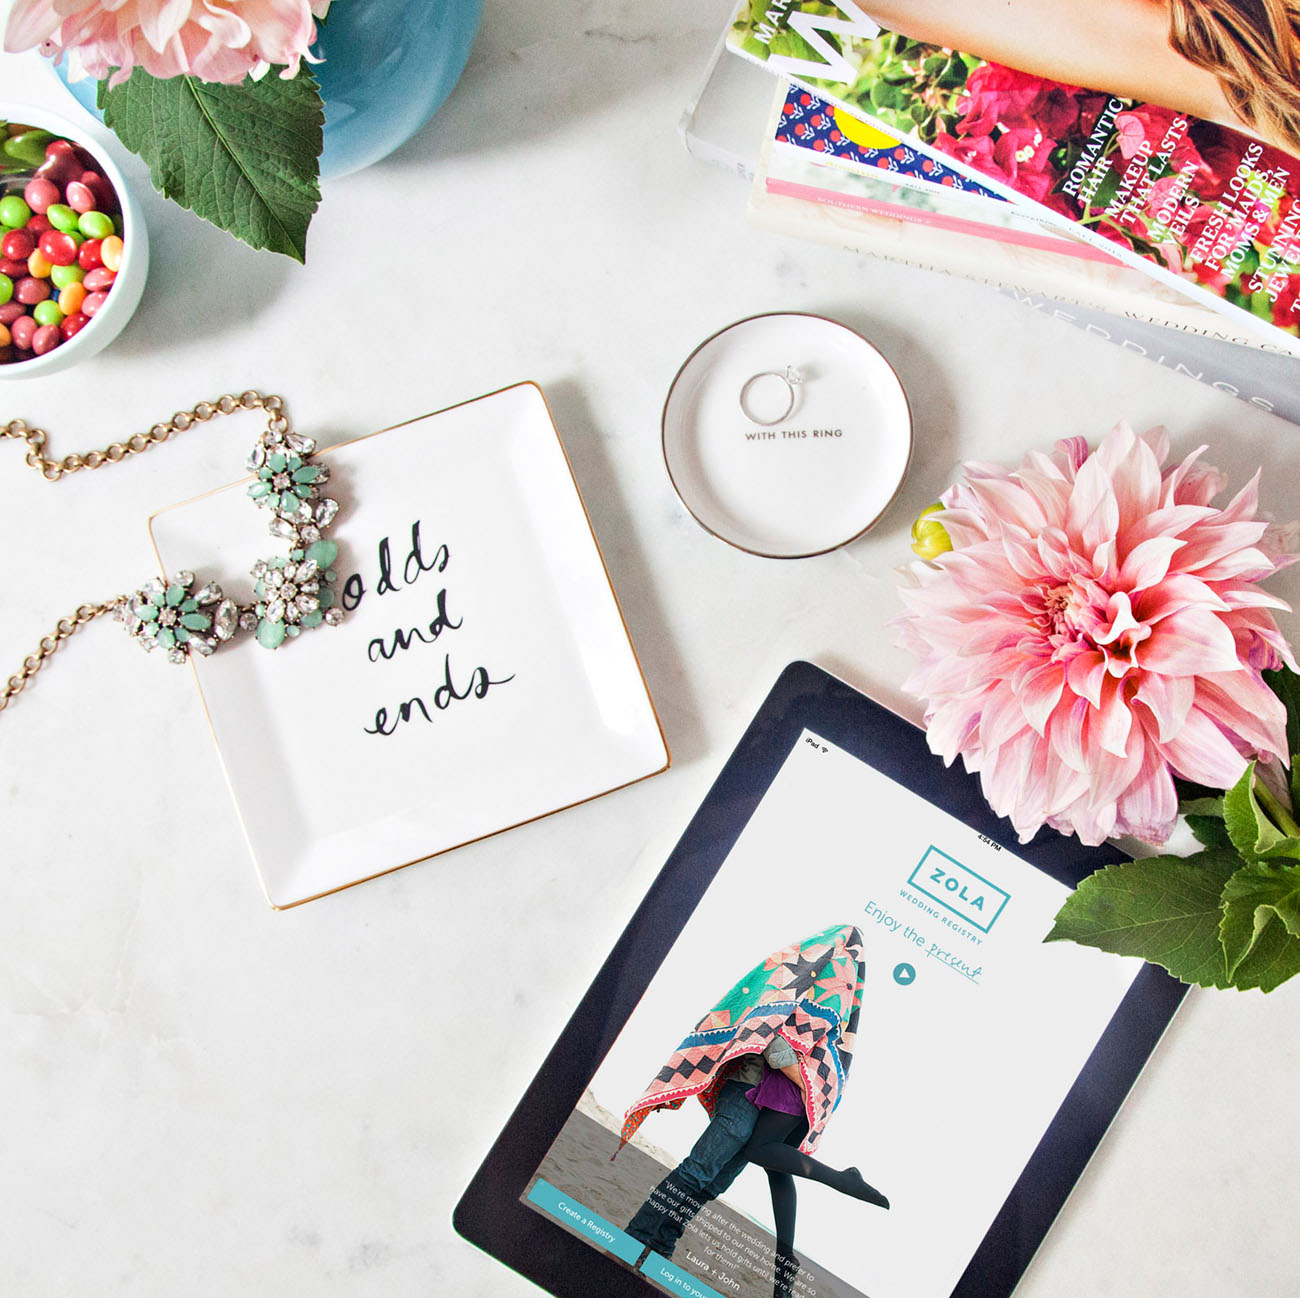 How to register for gifts you ll always love with zola for When should we register for wedding gifts